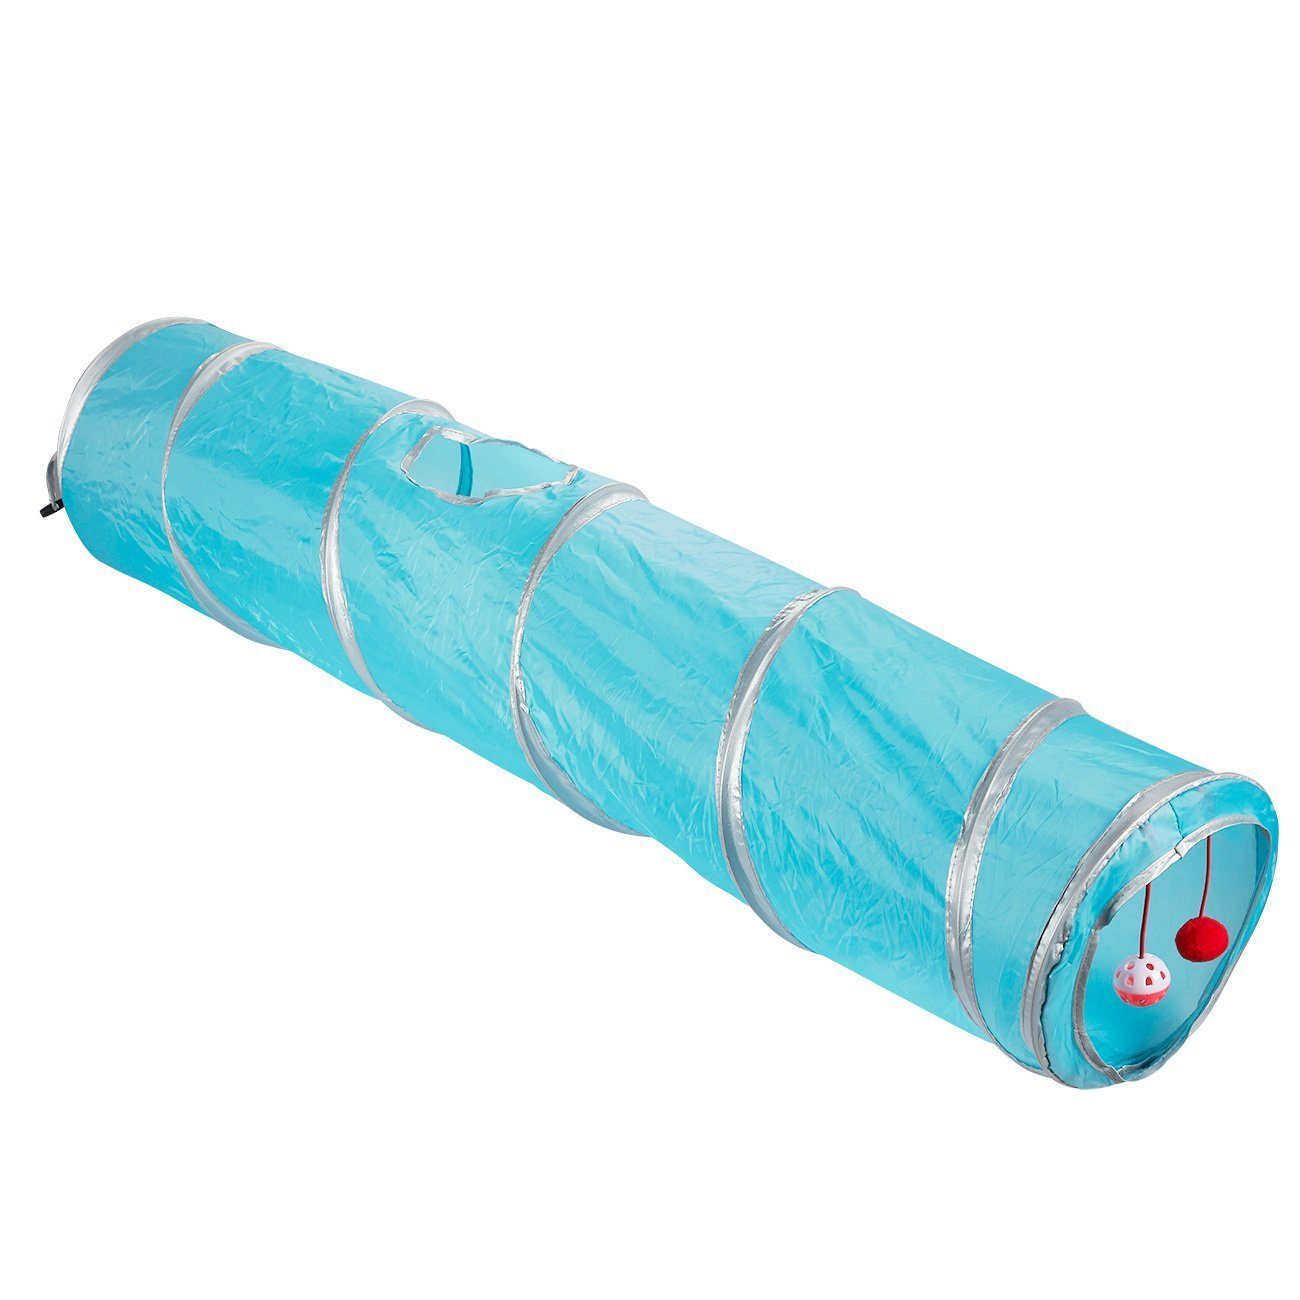 S-Lifeeling Pack of 1 Pet Agility Play Tunnel Tube Accessory Gift - Pet Training Toy for Small Pets, Dogs, Cats, Rabbits, Teal - 47 x 9.75 inches